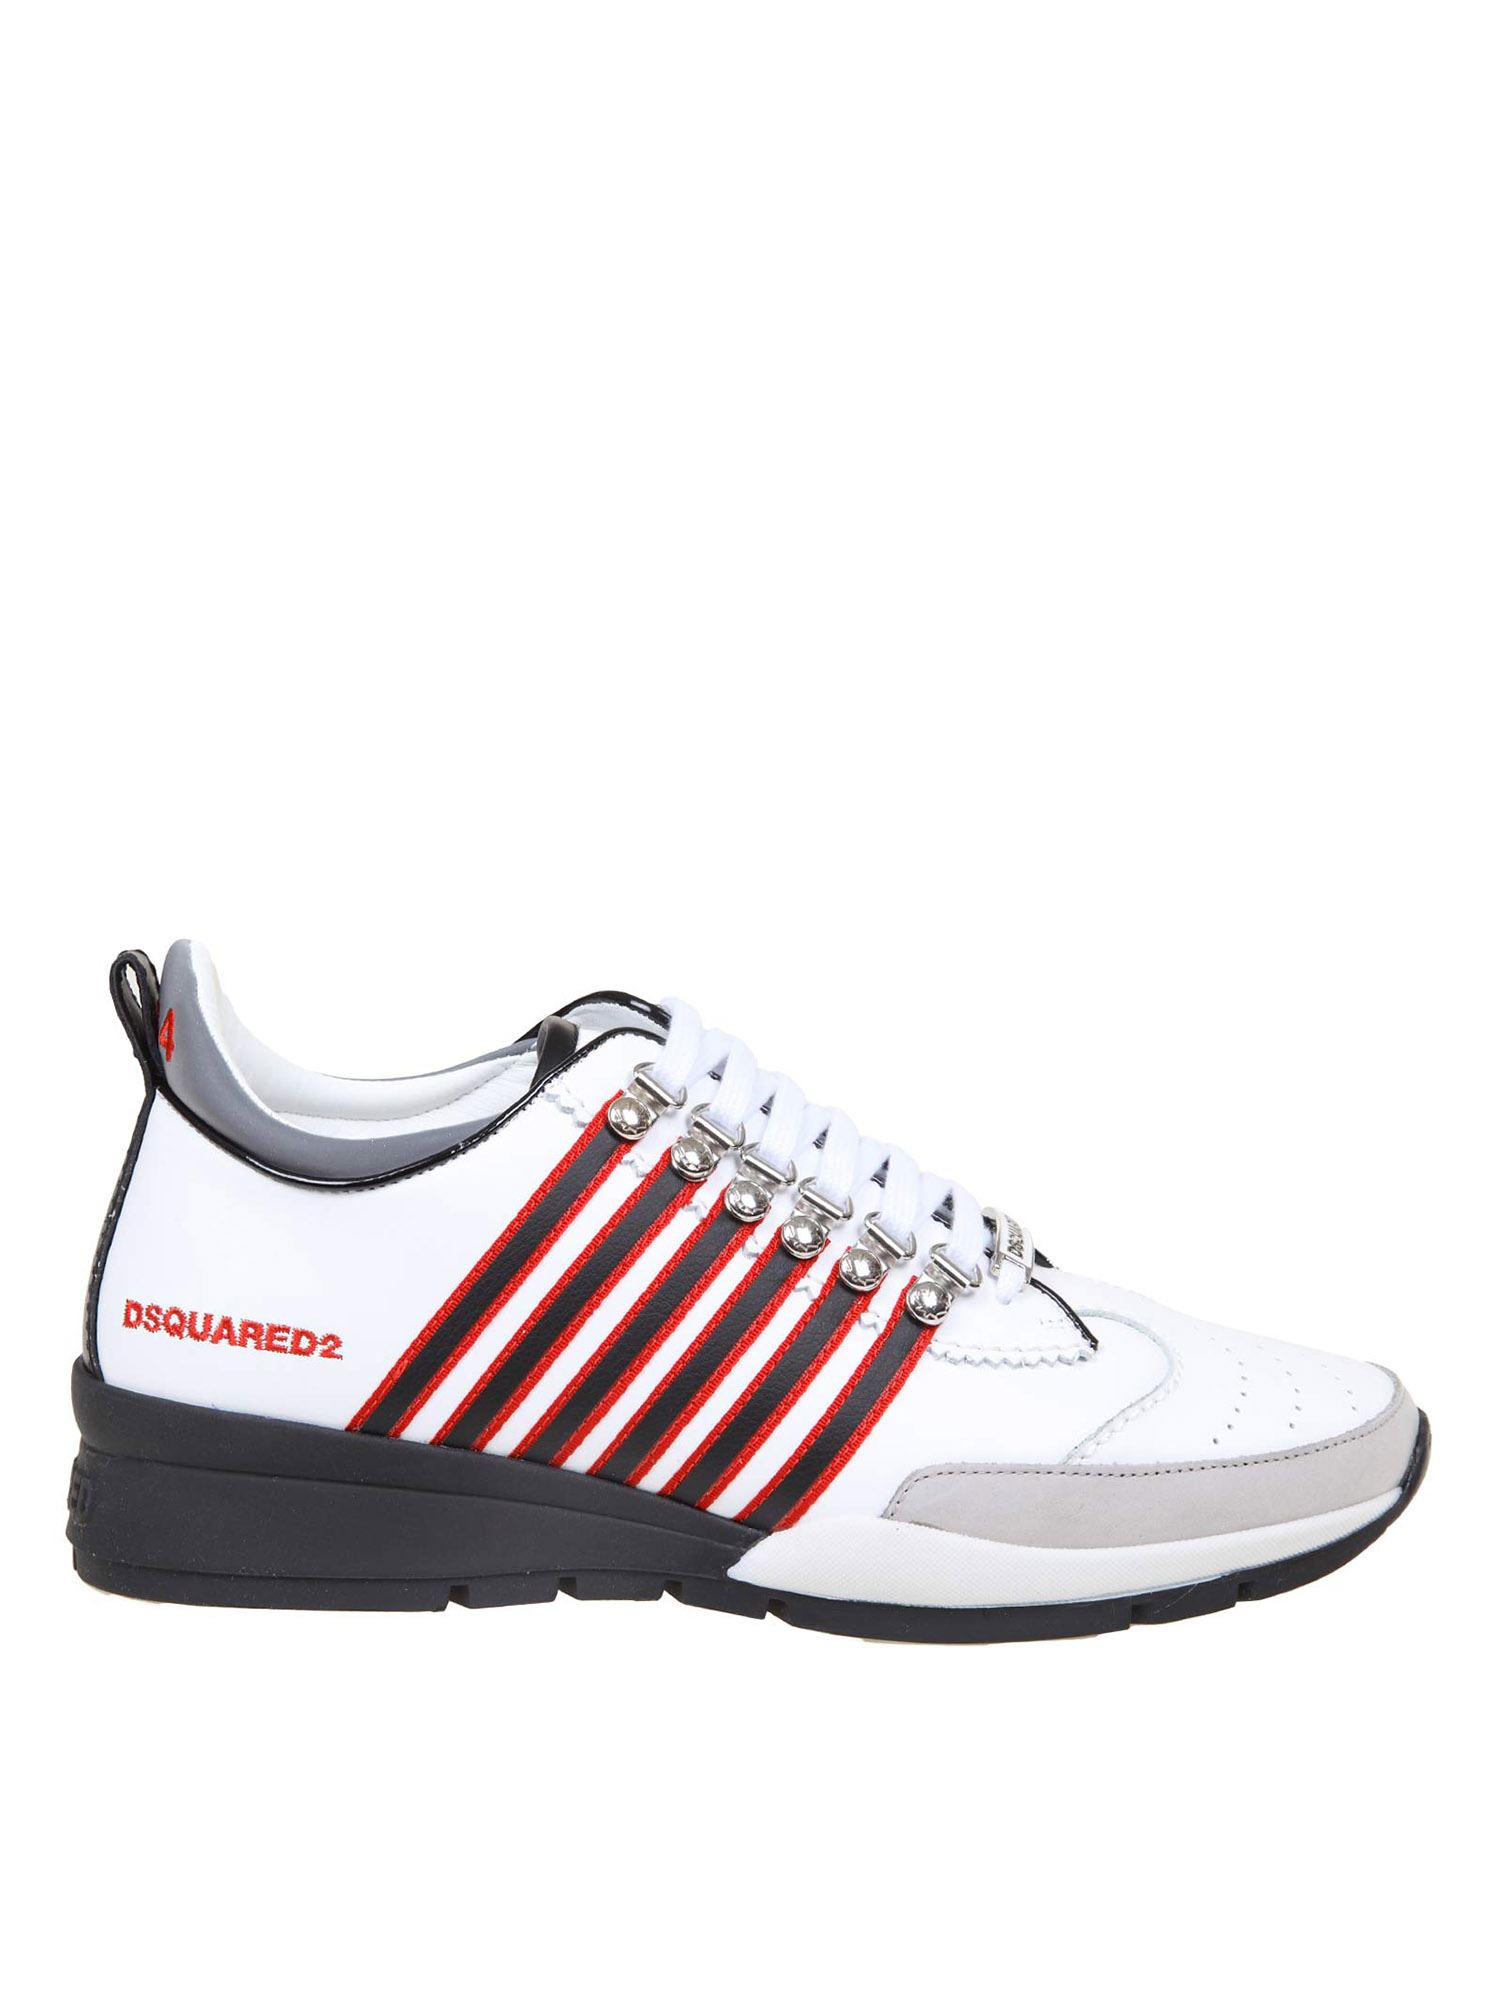 DSQUARED2 251 SNEAKERS IN WHITE AND RED